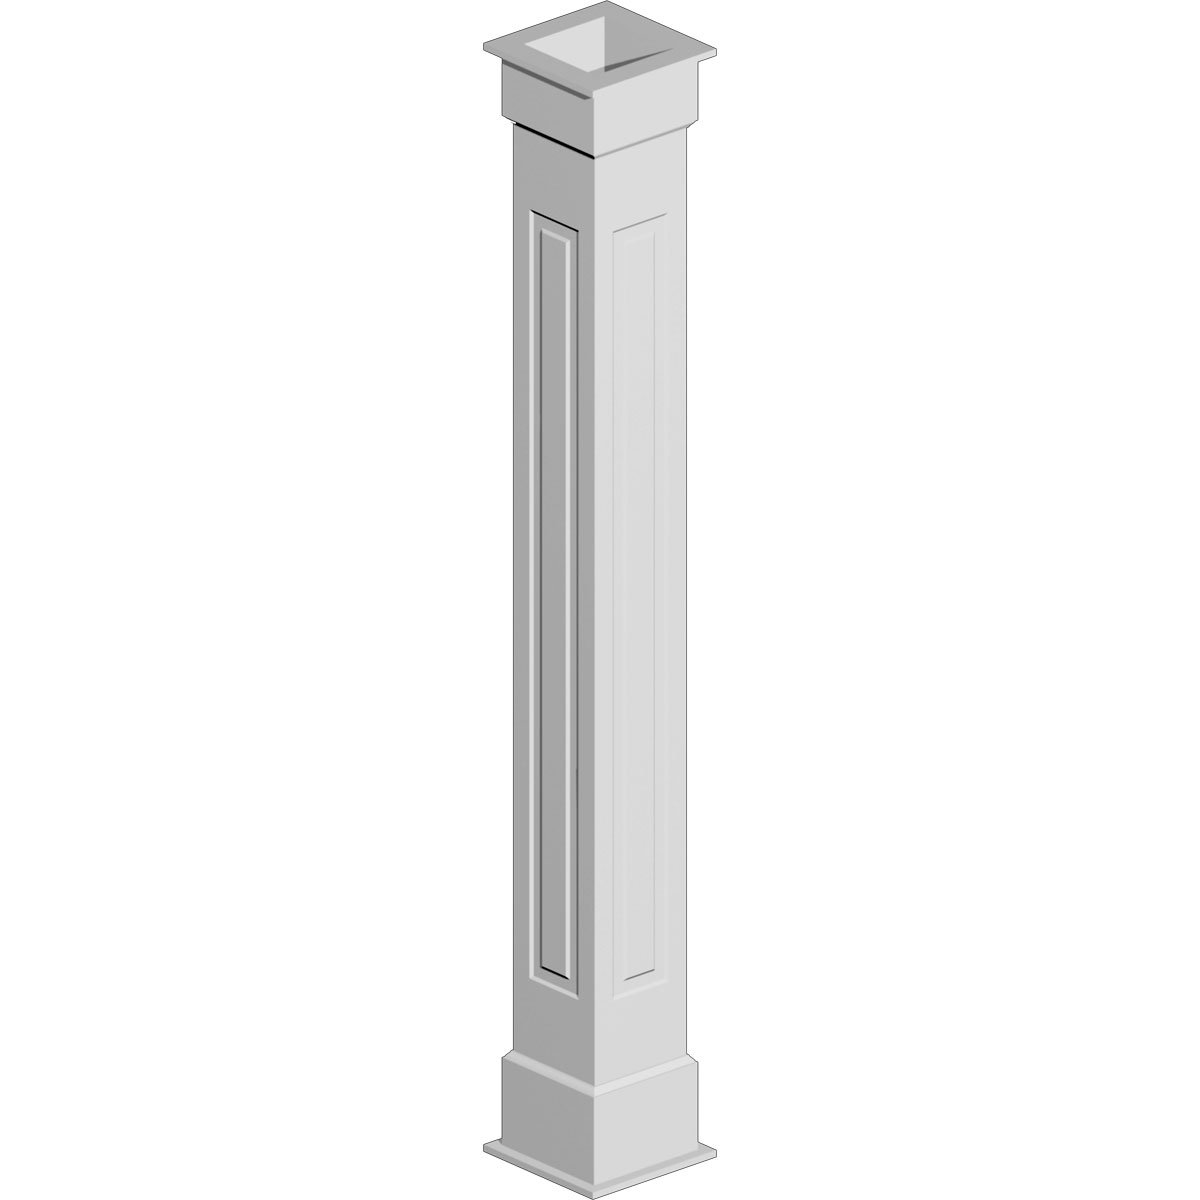 COLUMN WRAP KIT 10X96 RP 1BX NON TAPERED RAISED PANEL by Fypon (Image #1)